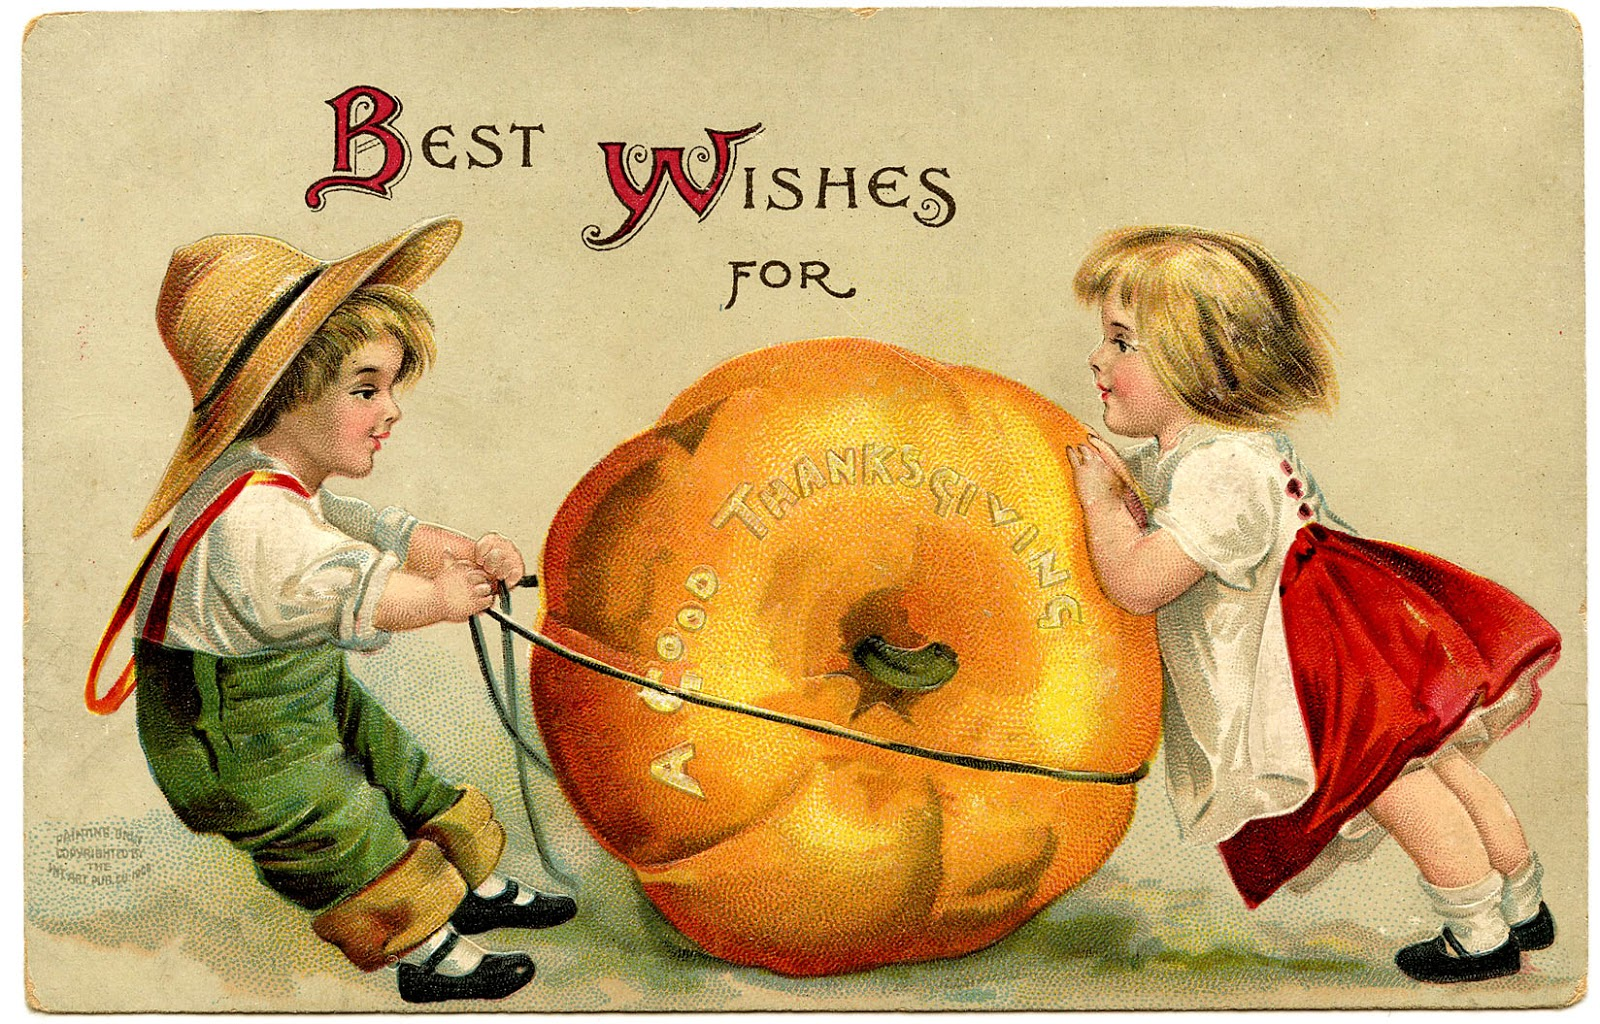 Vintage Thanksgiving Image Cute Kids With Pumpkin